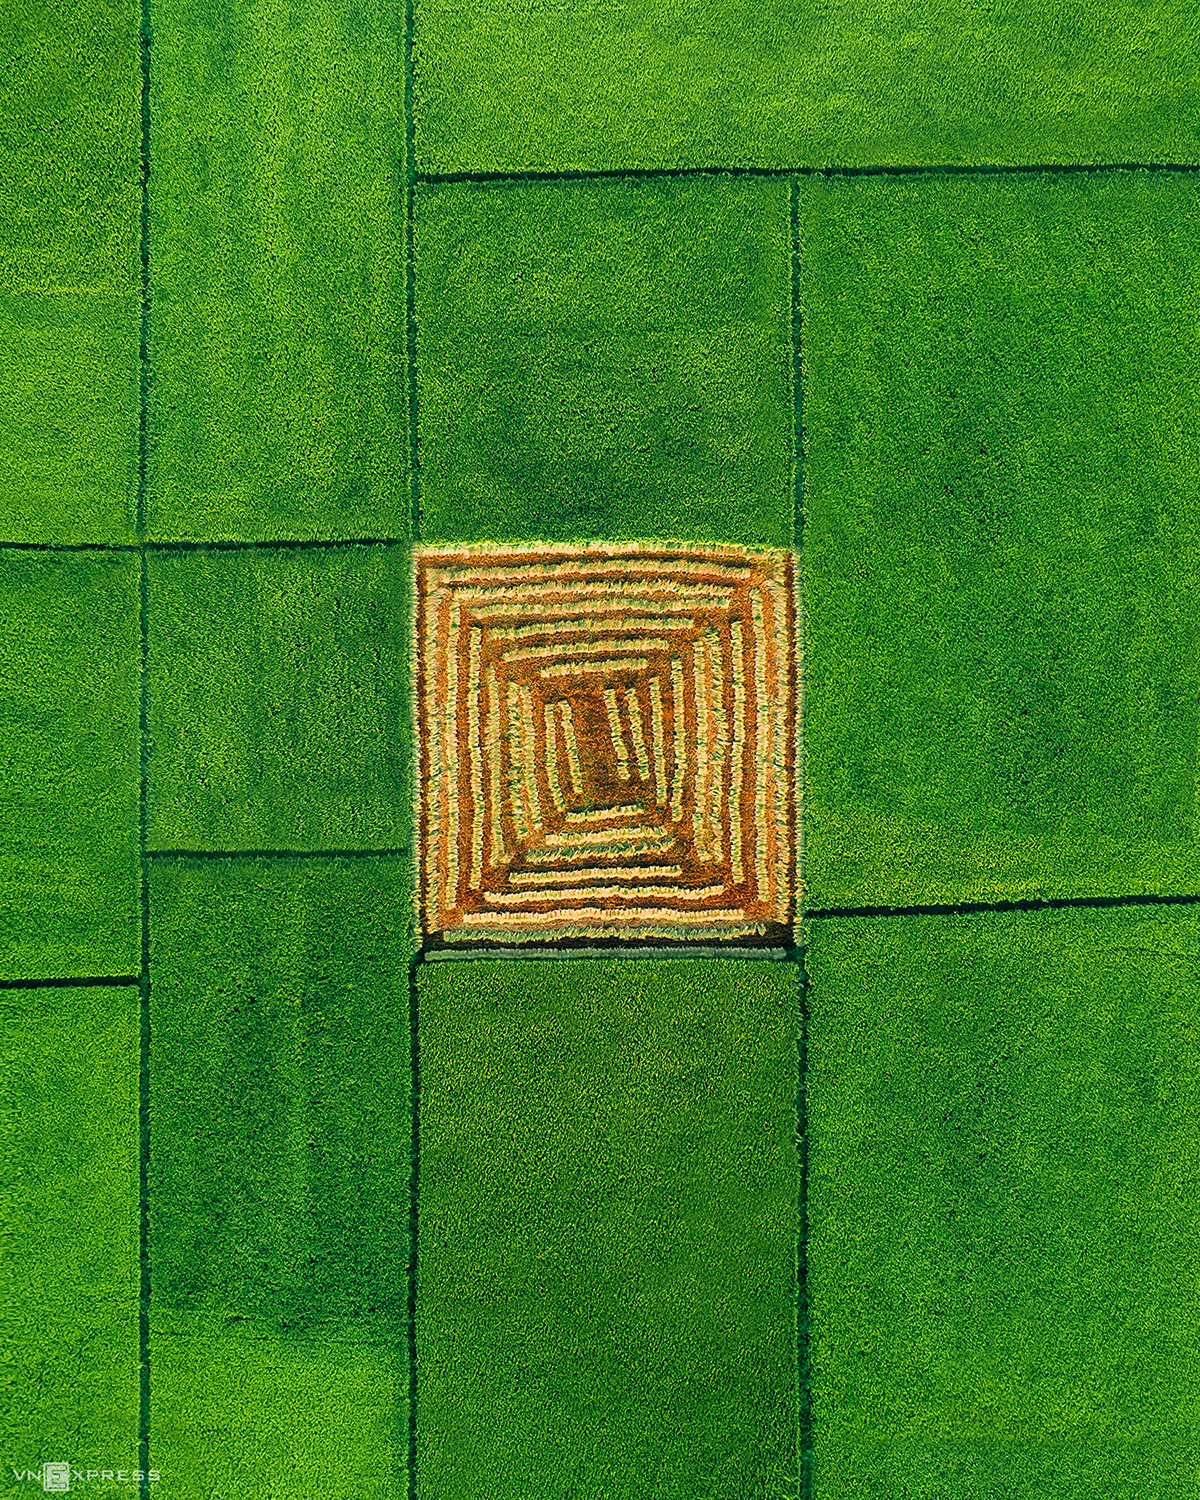 Green rice fields in Vinh Linh (Quang Tri)